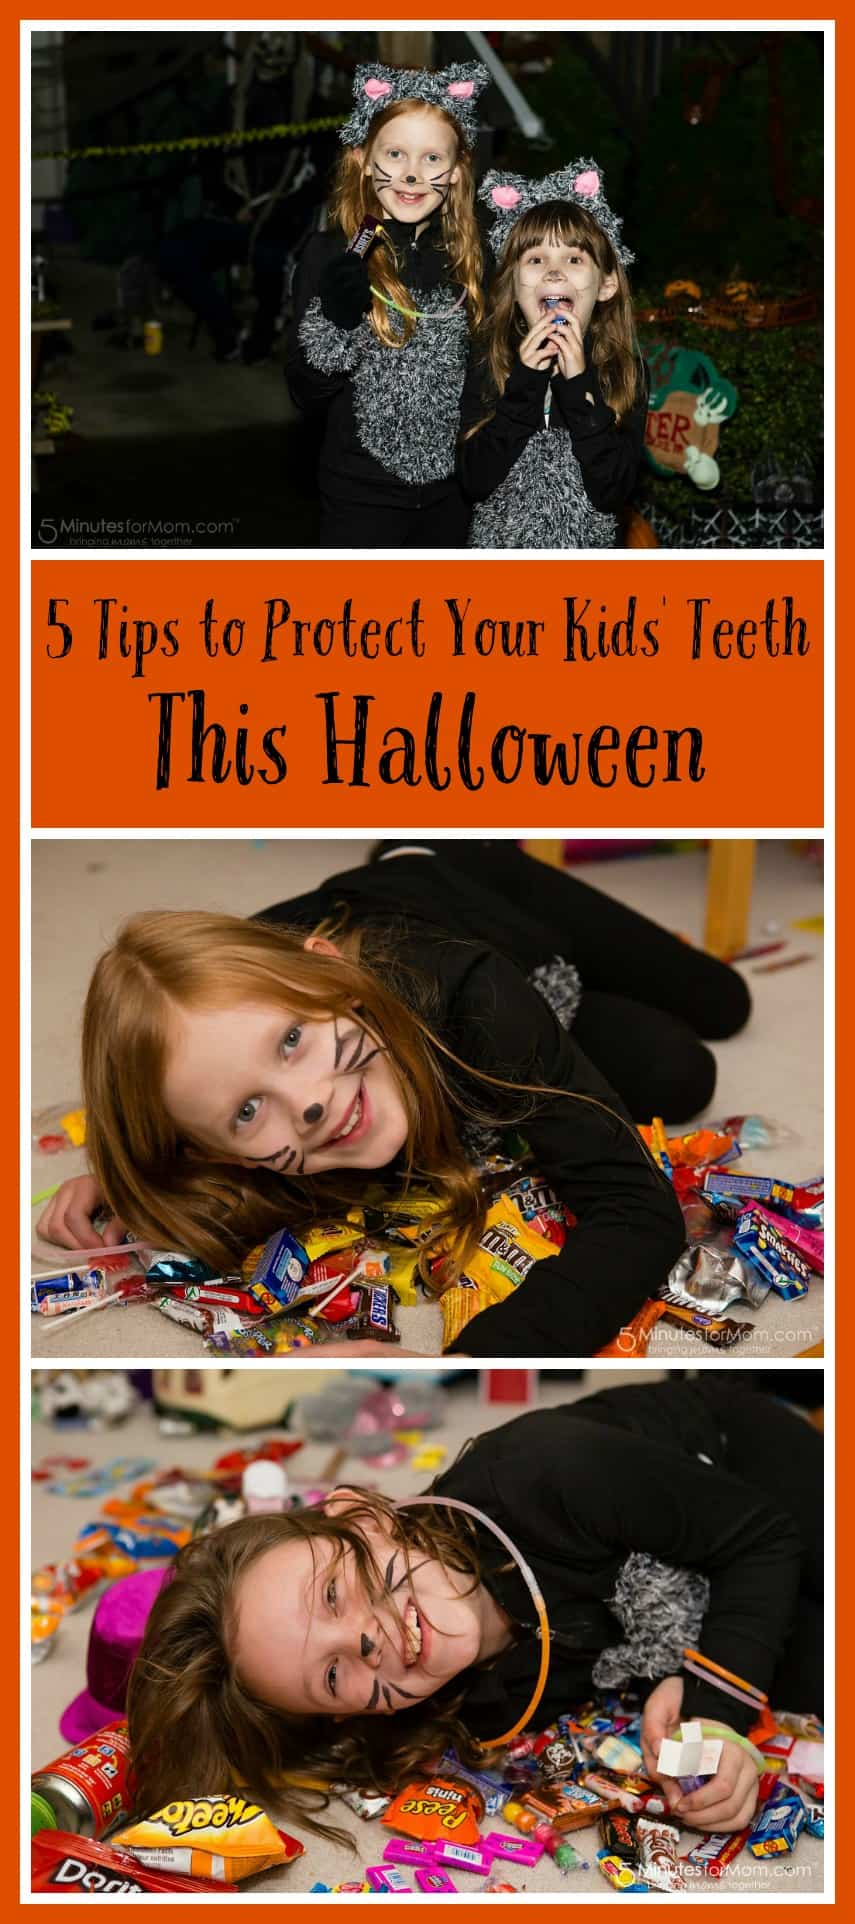 5 Tips to Protect Your Kids Teeth This Halloween